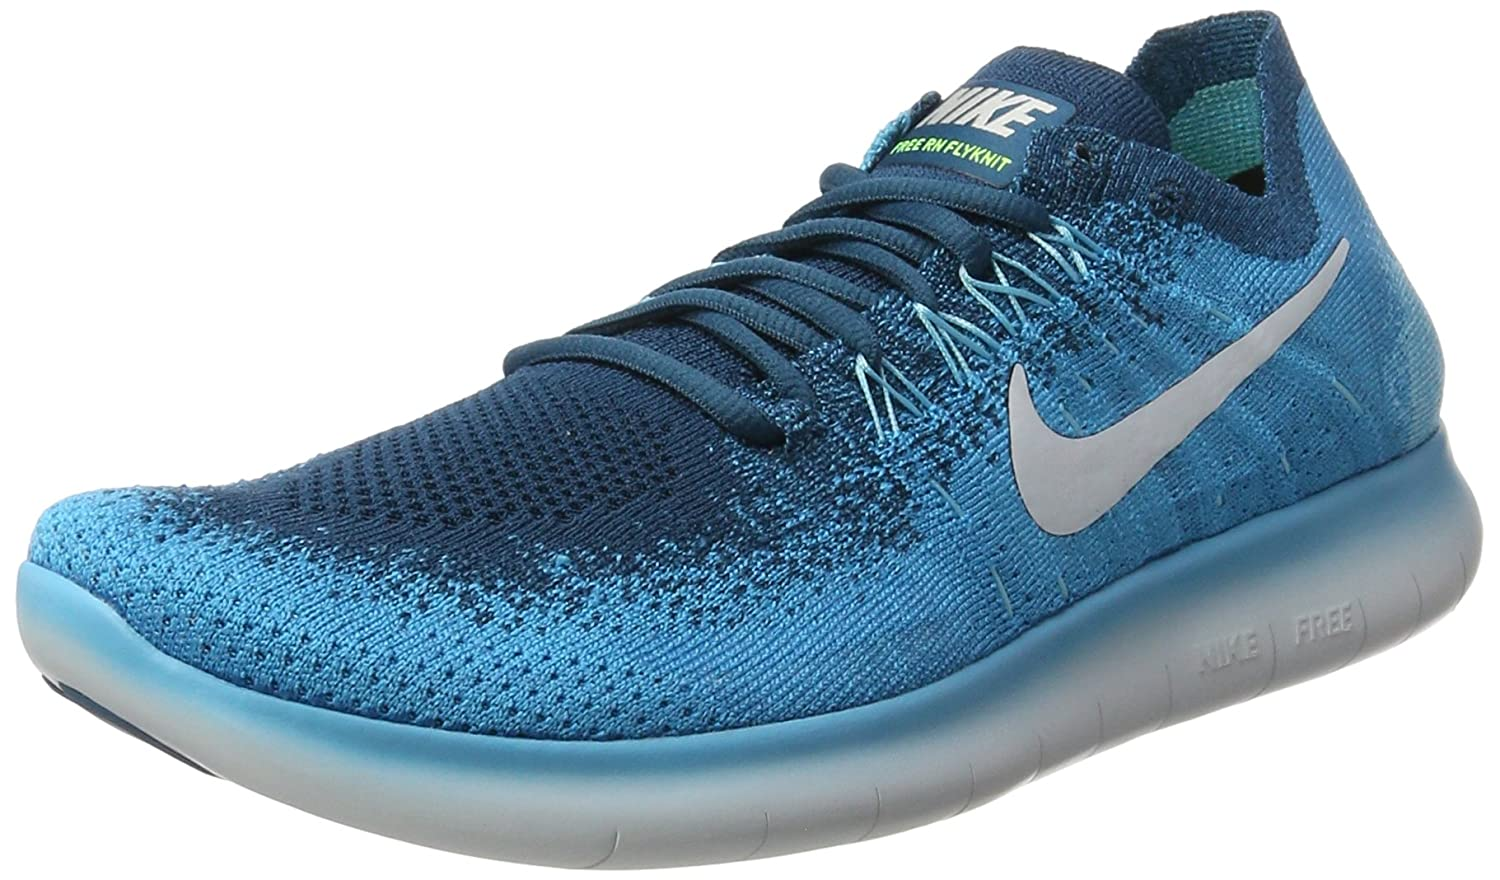 455025c2b2f7a Nike Free Rn Flyknit 2017 Sz 10 Mens Running Blue Lagoon Pure  Platinum-Legend Blue Shoes  Buy Online at Low Prices in India - Amazon.in